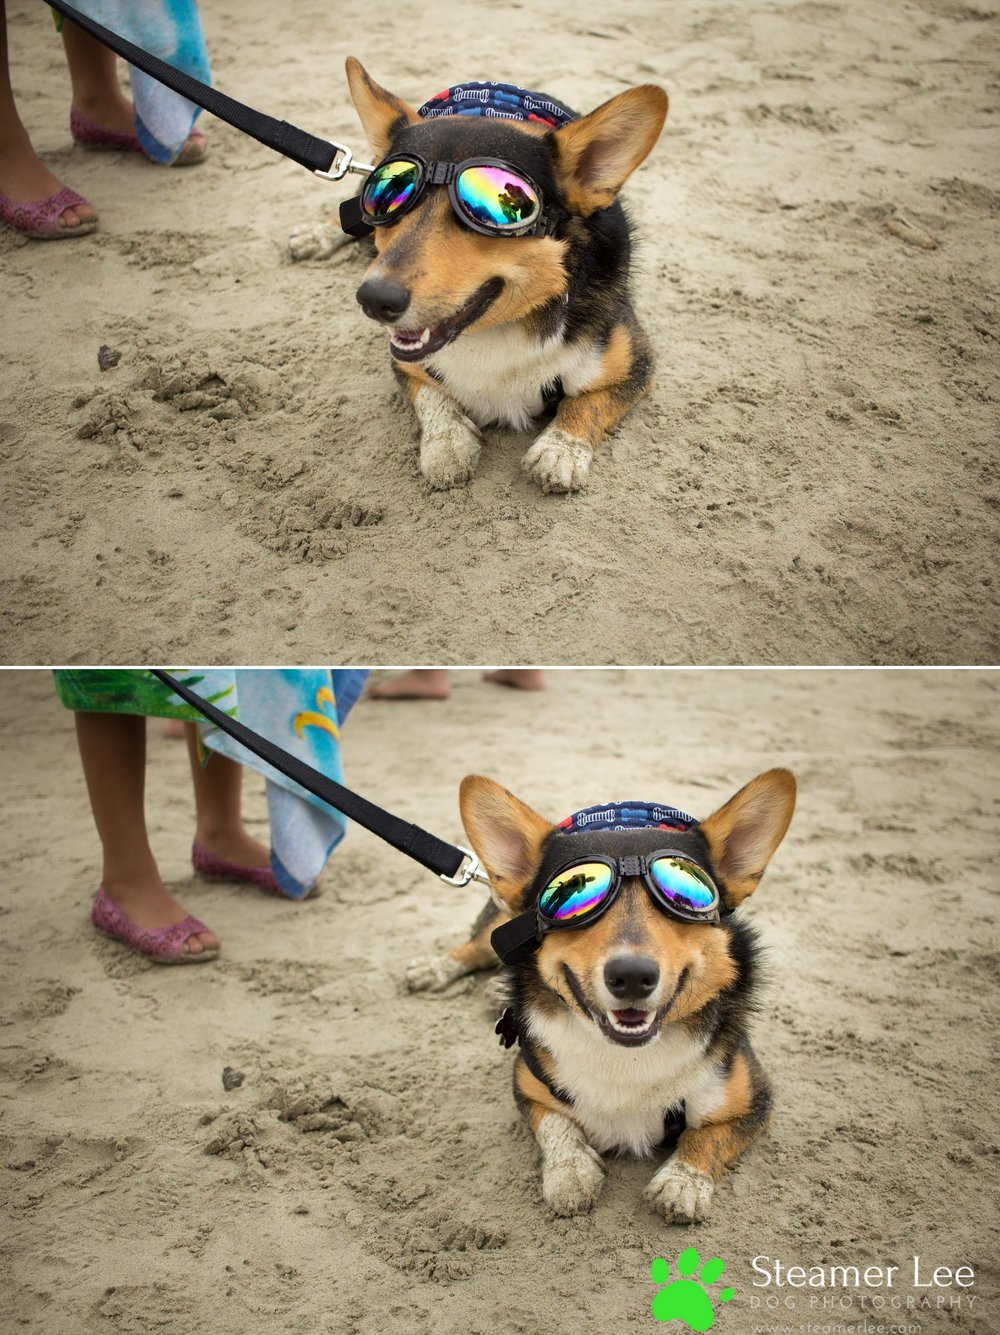 Steamer Lee Dog Photography - July 2017 So Cal Corgi Beach Day - Vol. 3 - 46.jpg